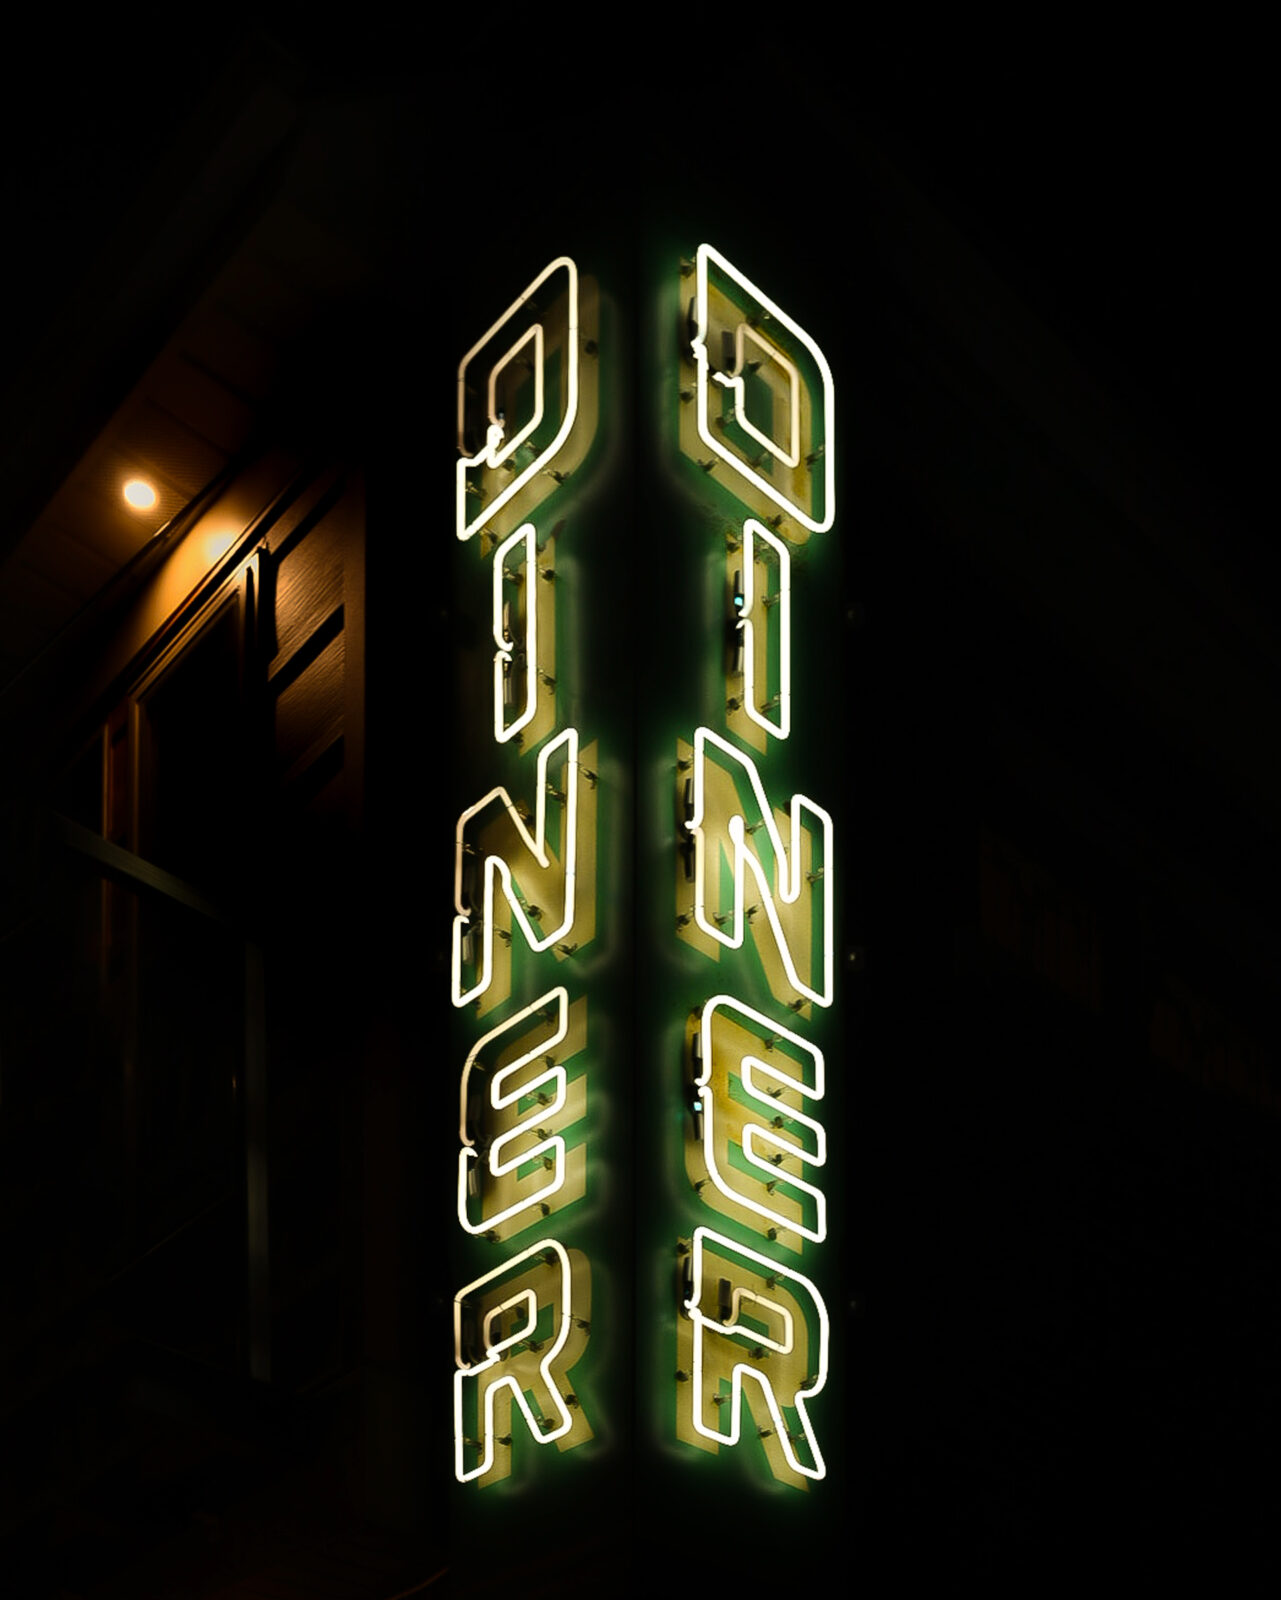 corner neon sign with the word